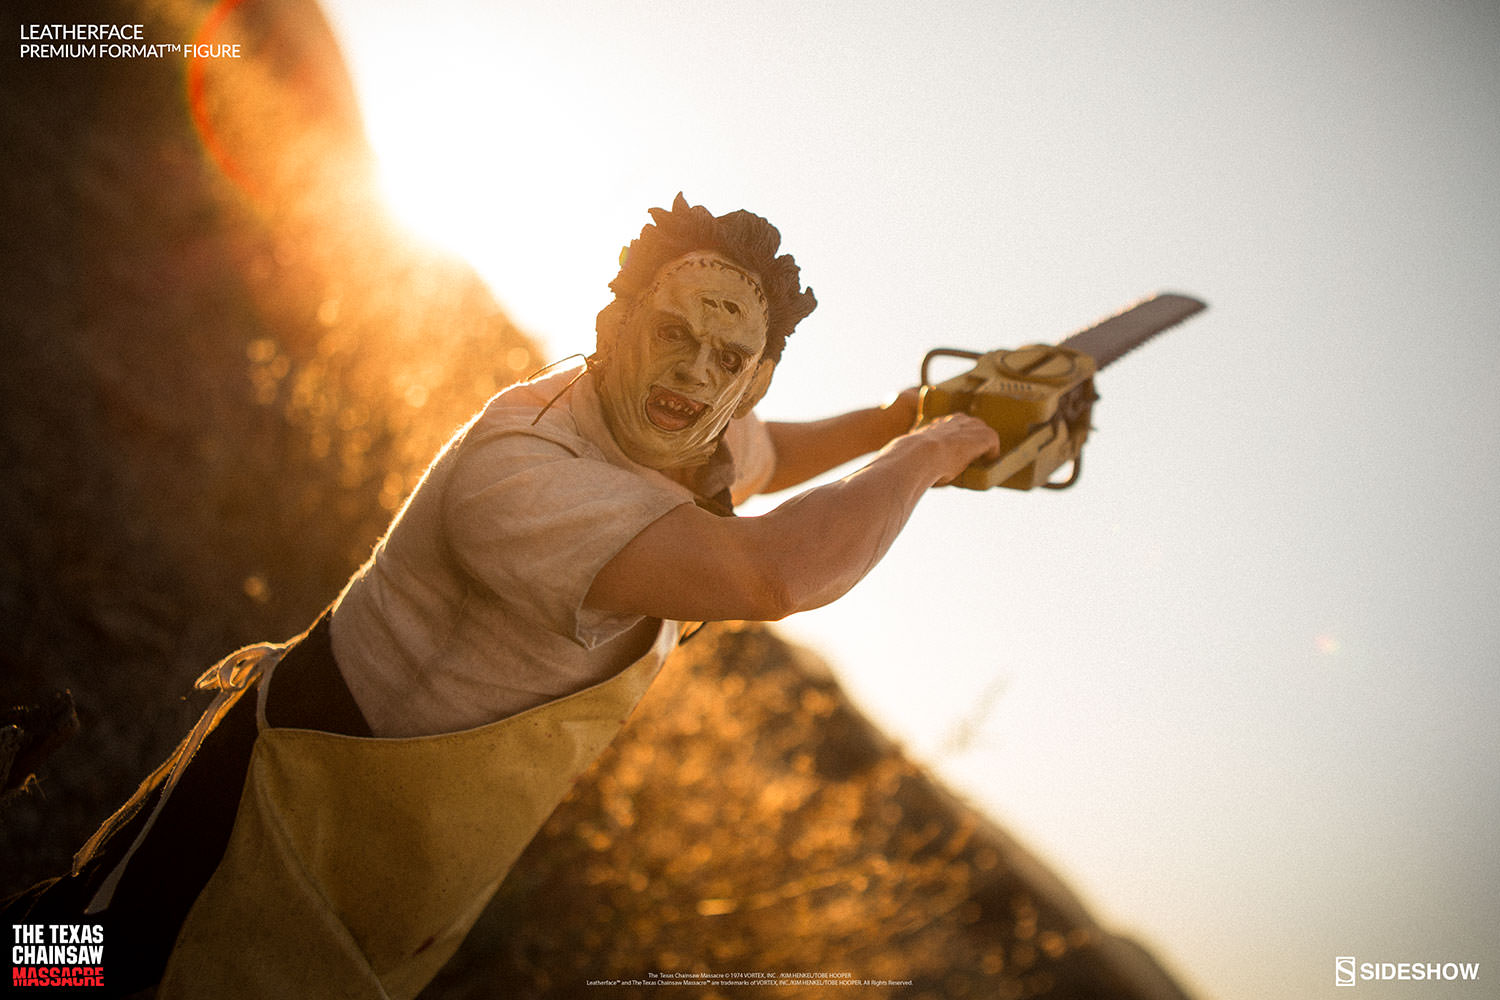 Is the Texas Chainsaw Massacre Story Real? - Texas ...